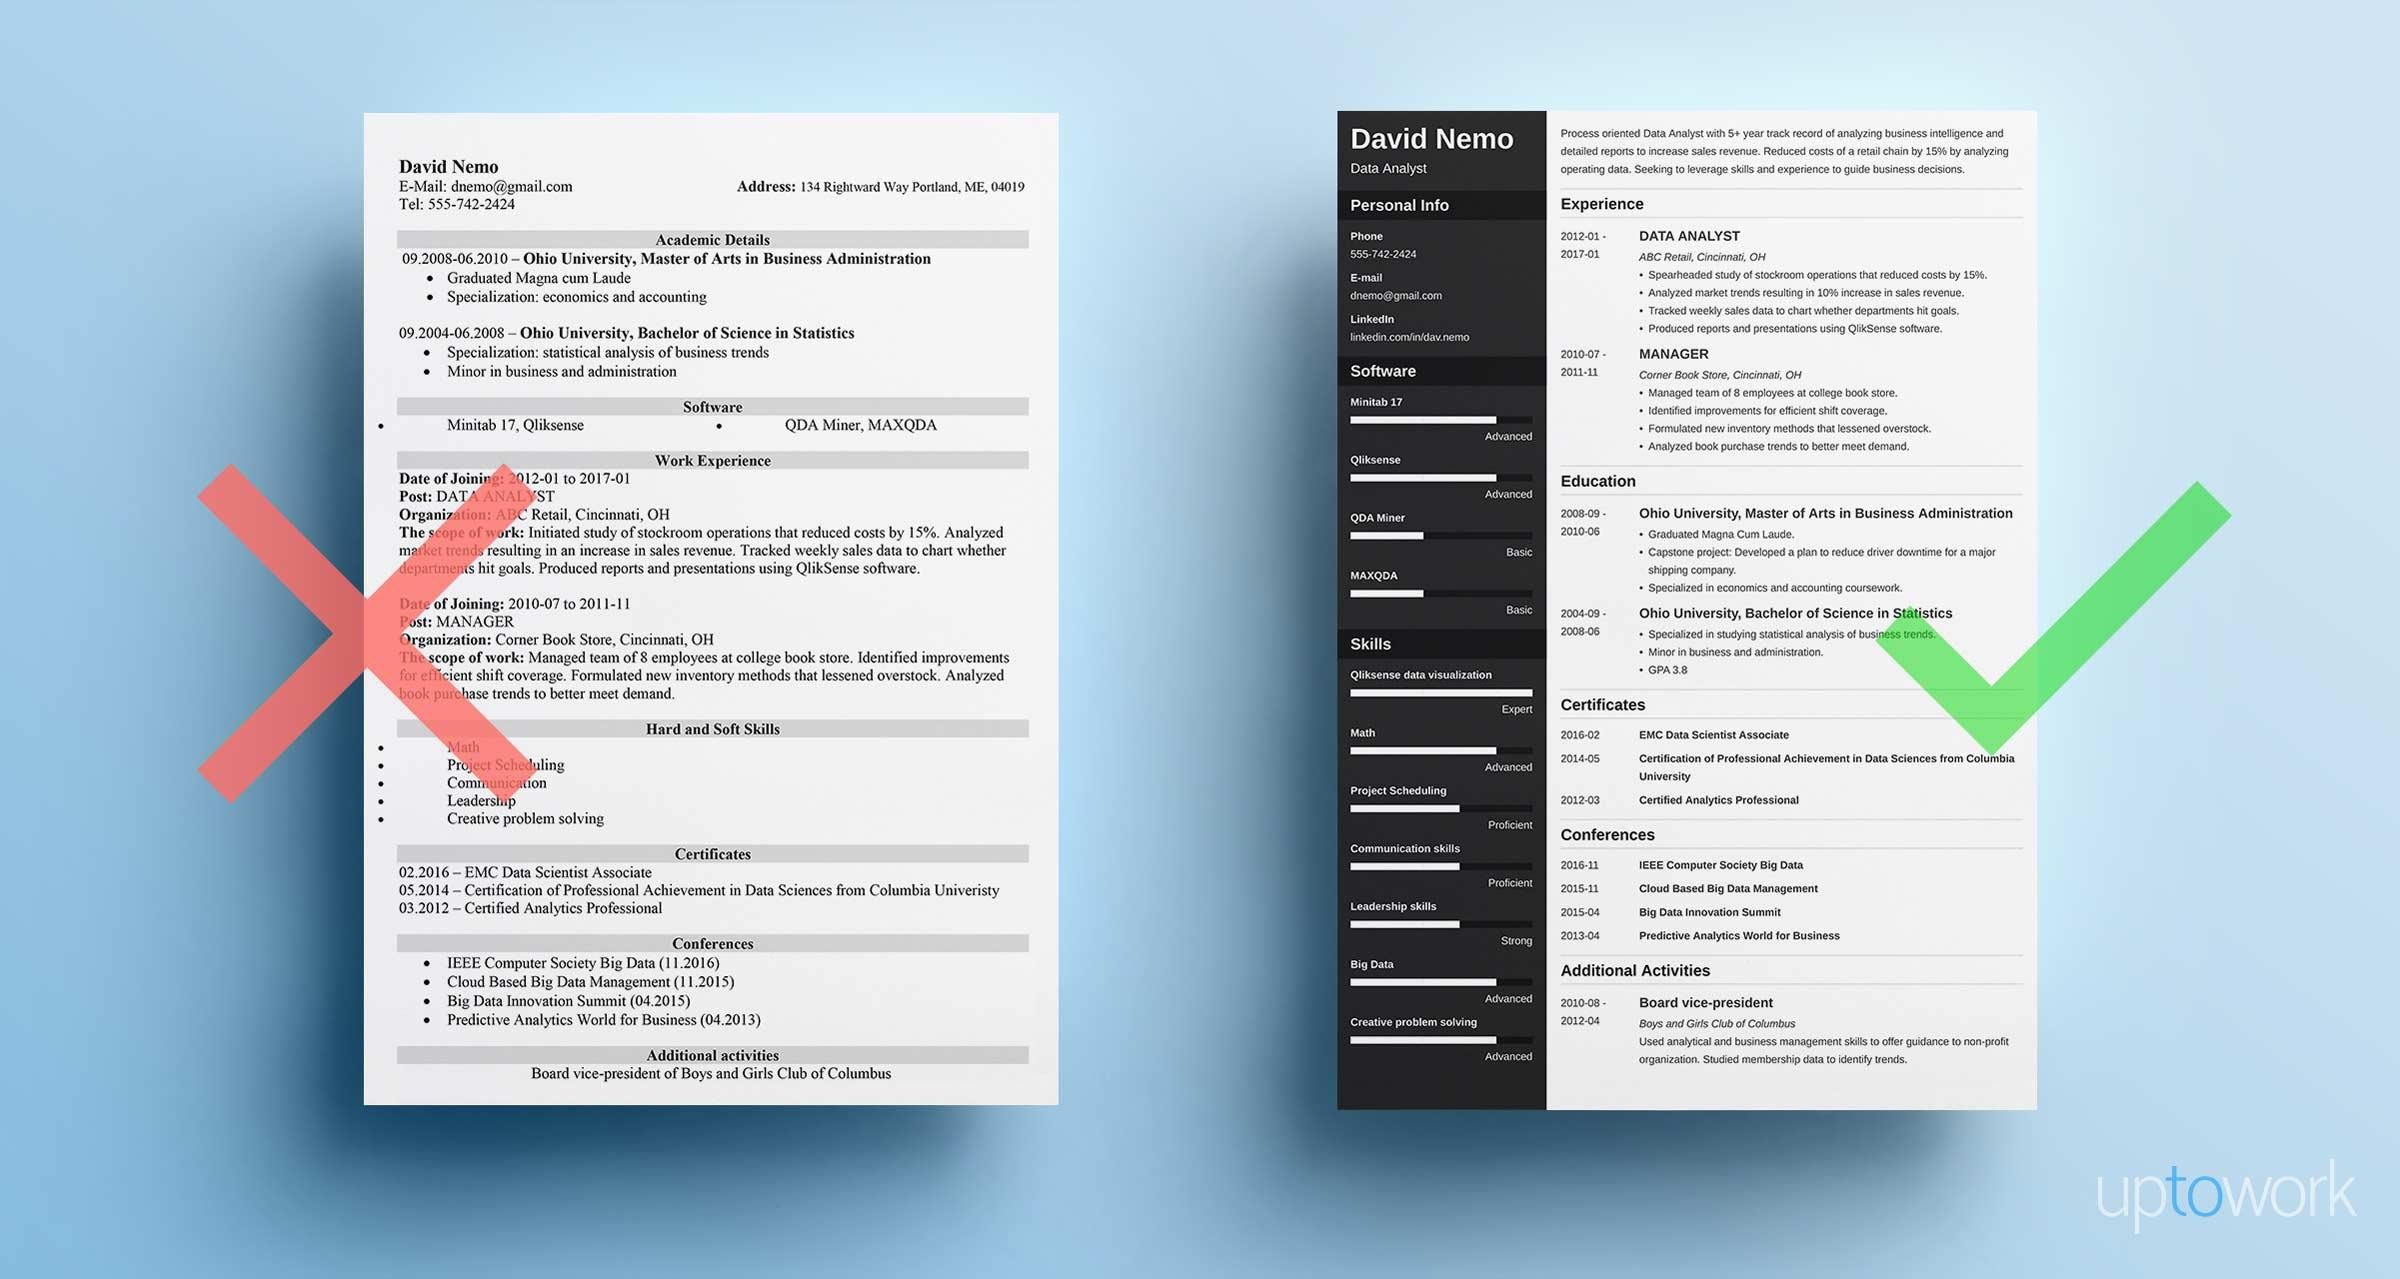 best resume builders free paid features professional review uptowork template financial Resume Professional Resume Review